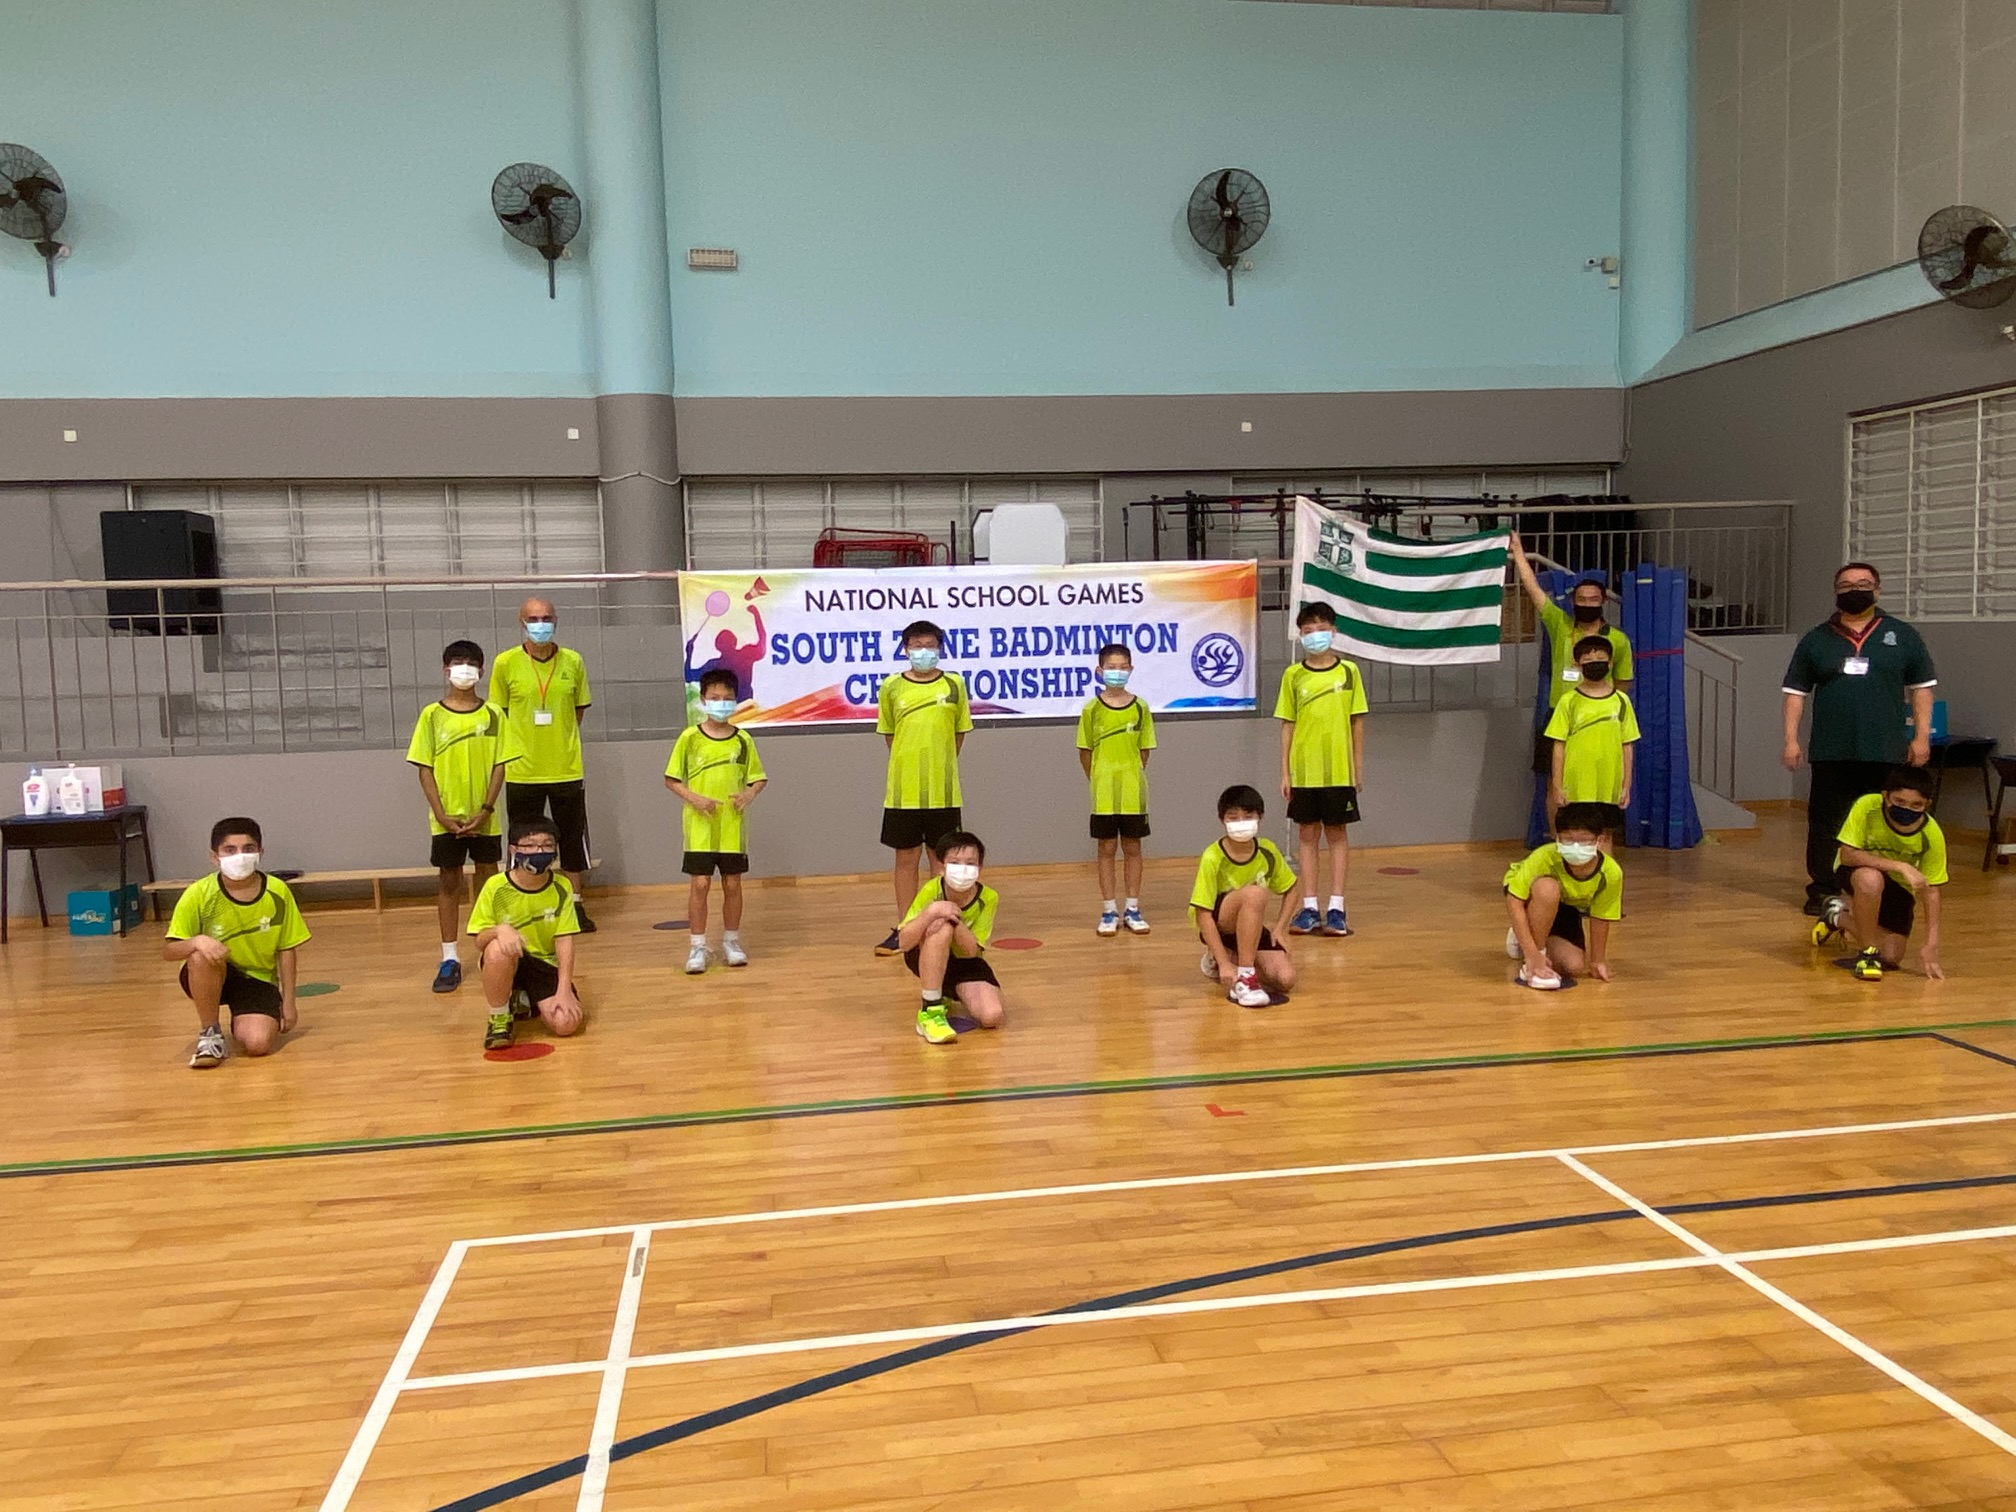 NSG Badminton: SJI Junior's shuttlers dominate ACS Primary in grand final to retain championship trophy!